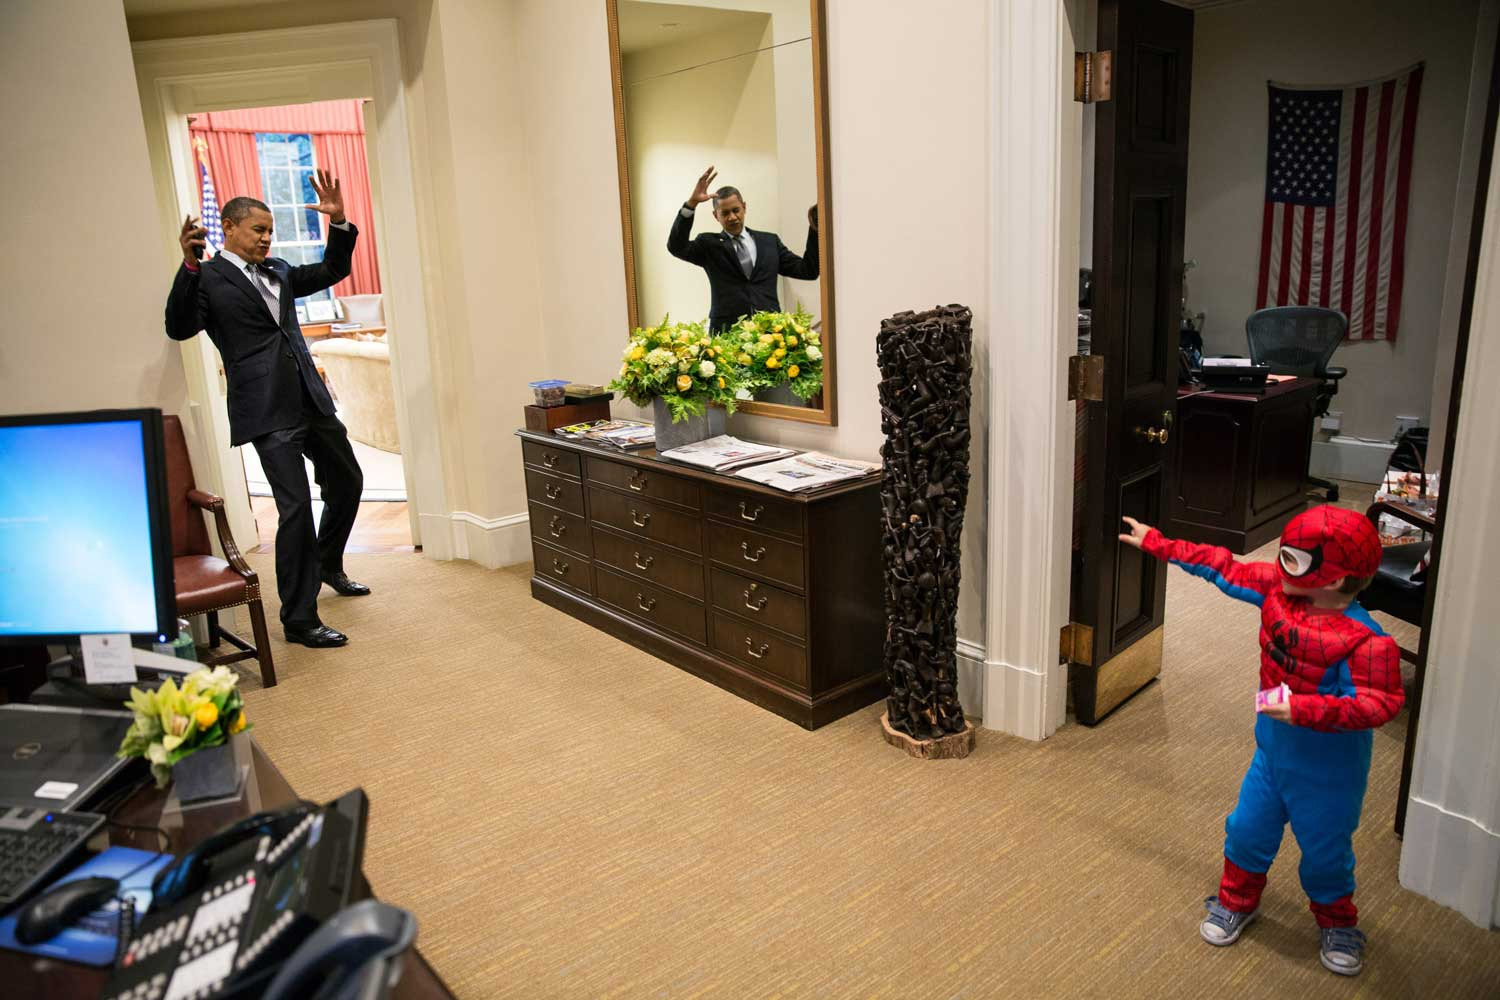 President Barack Obama pretends to be caught in Spider-Man's web as he greets the son of a White House staffer in the Outer Oval Office, Oct. 26, 2012.